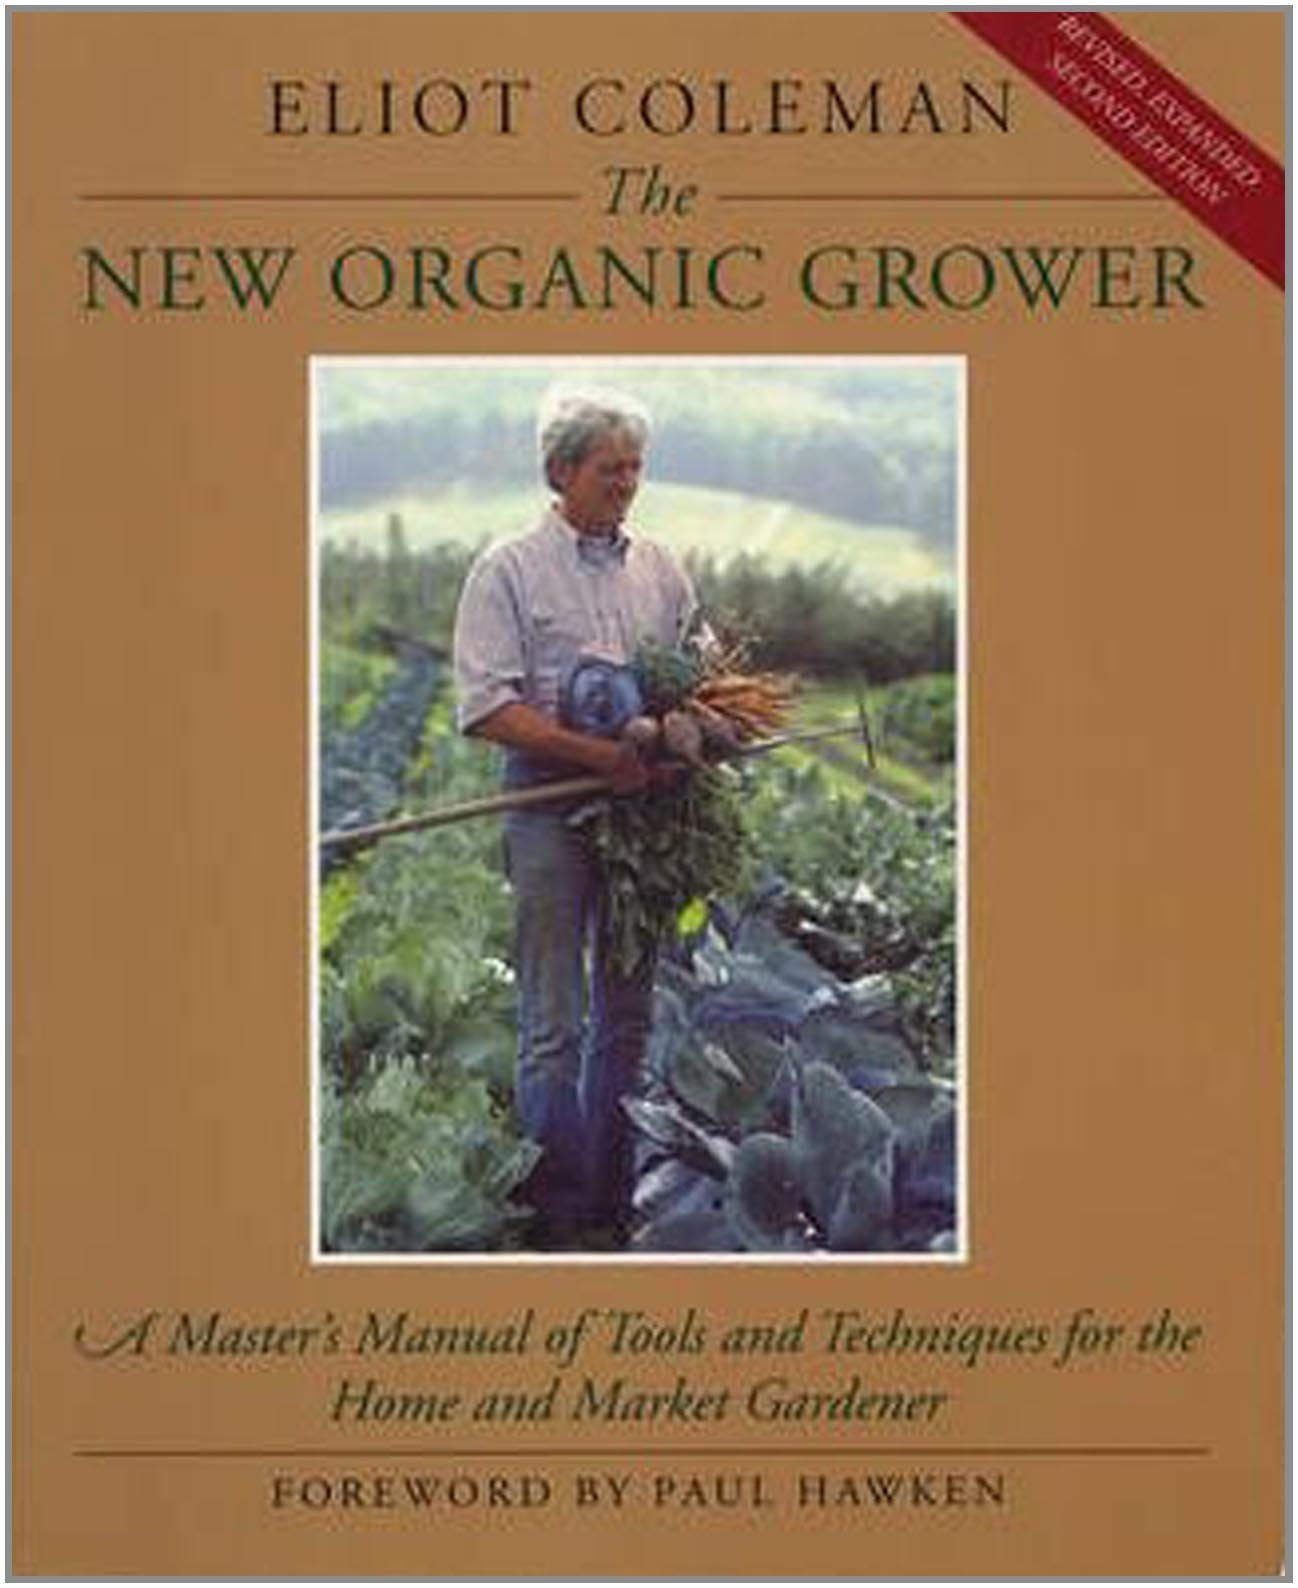 Image result for the new organic grower